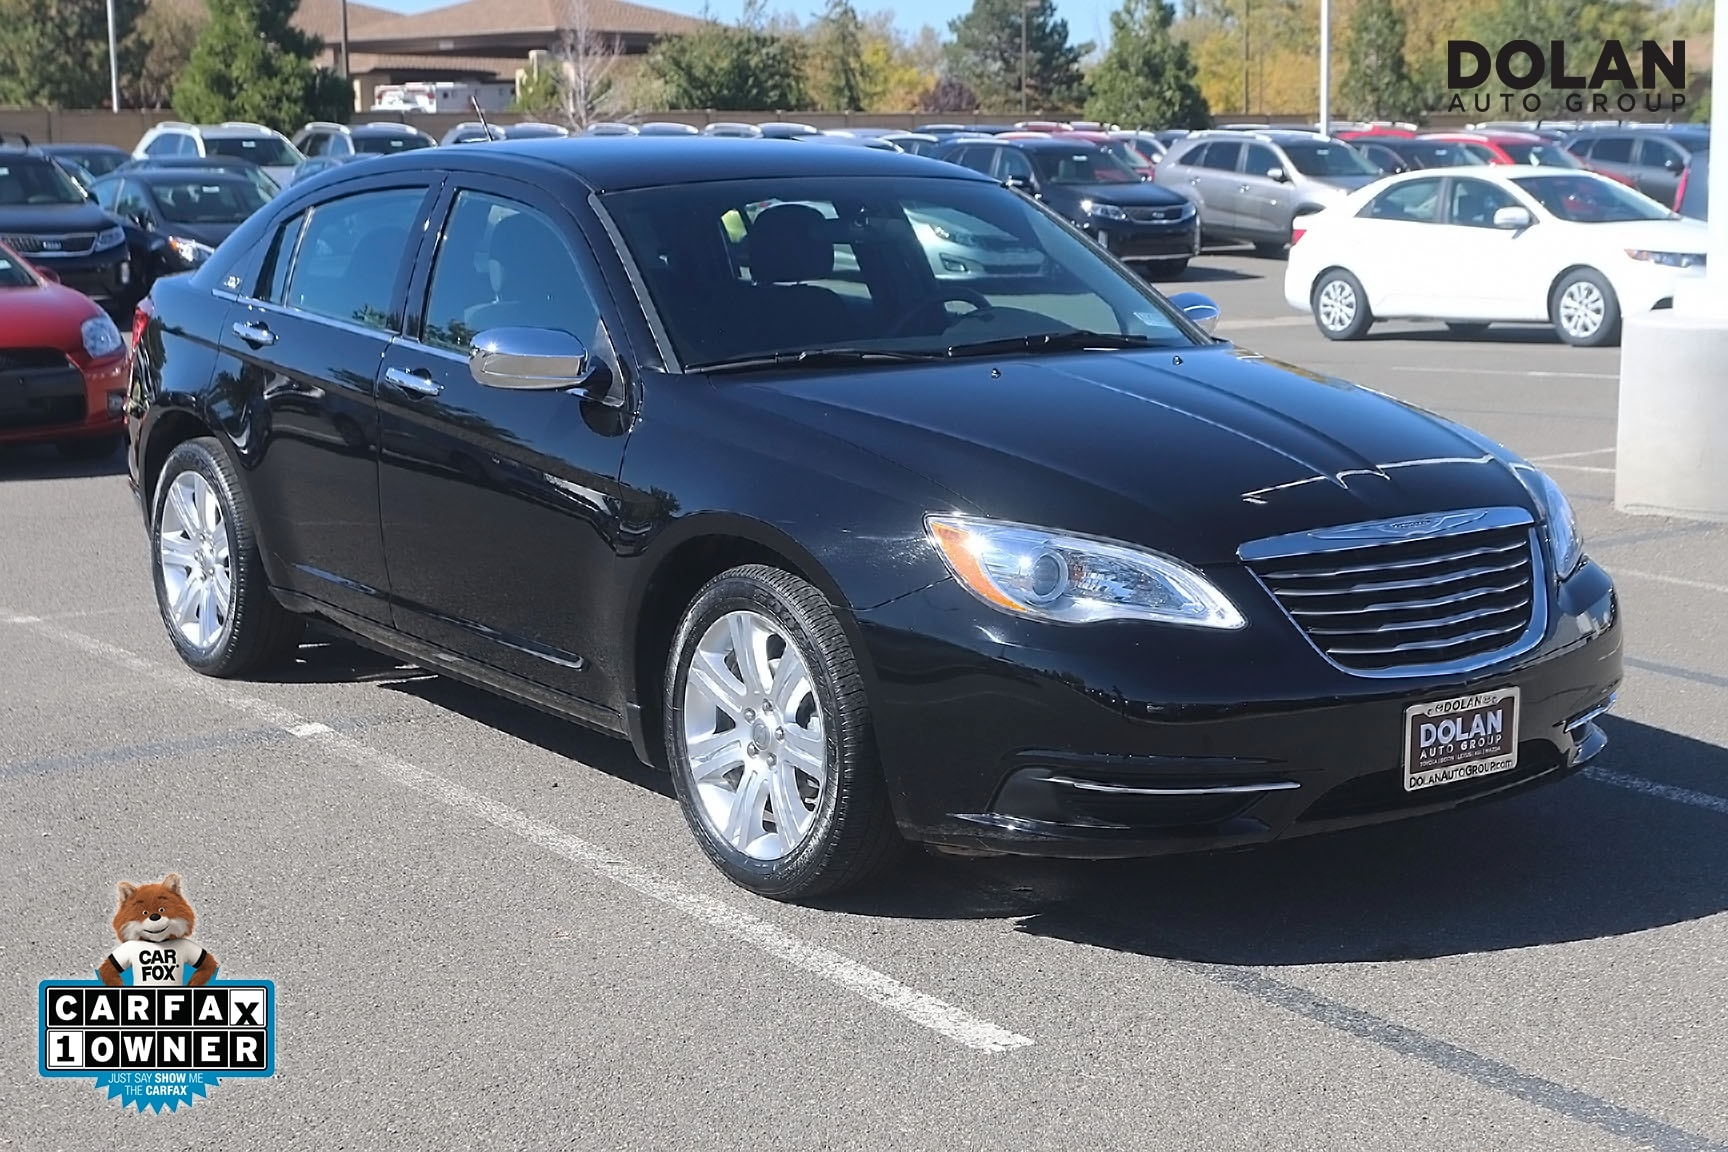 used chrysler for sale in reno - dolan auto group